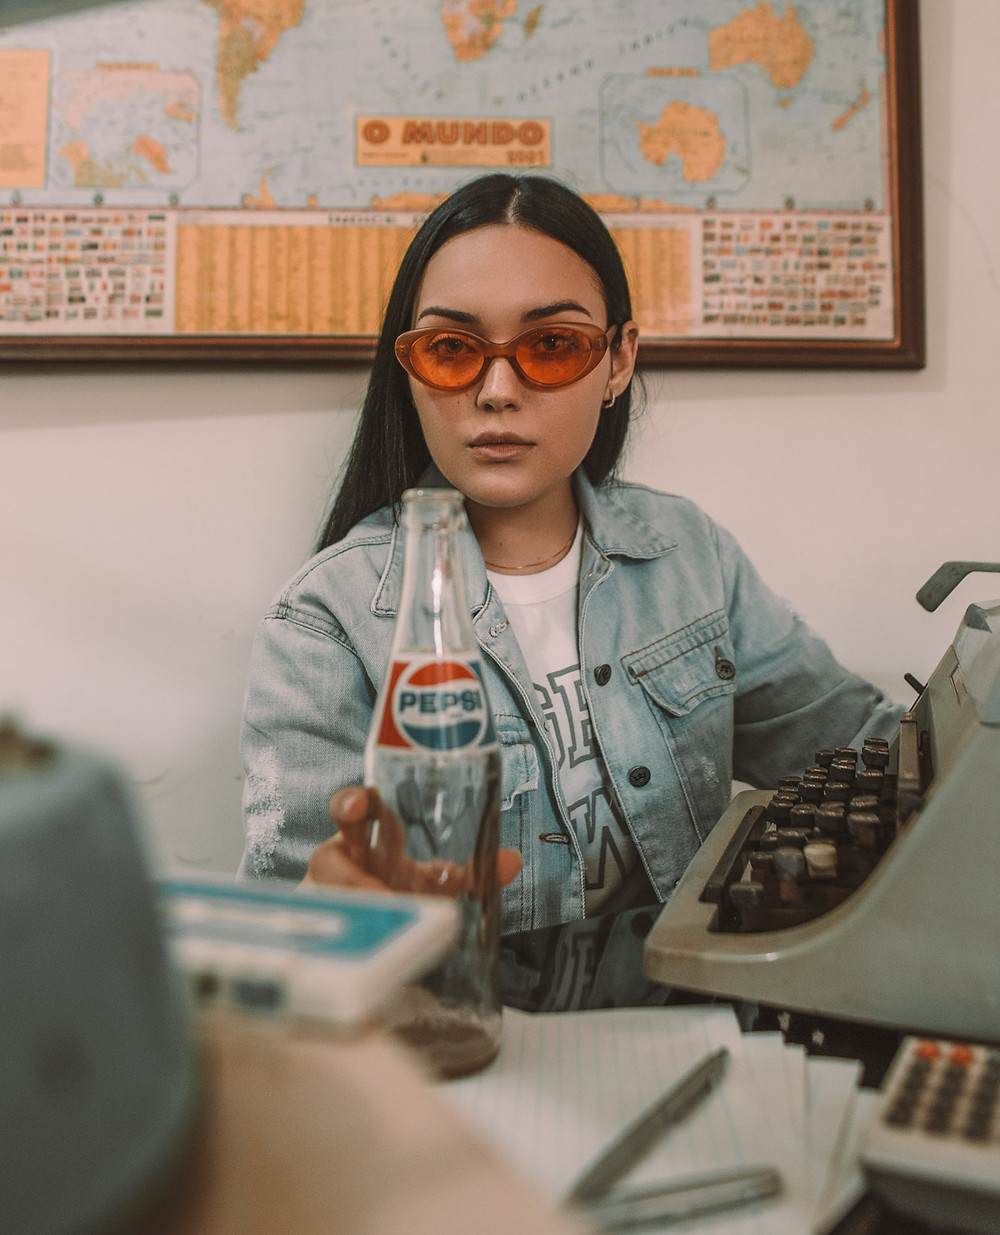 Latina Girl In A Blue Denim Jacket And White Shirt Sits In Front Of A World Map With A Empty VIntage Pepsi Glass Bottle And Grey-Green Typewriter Write Your Own Lifestyle Permission Slip Relationship Break-Up Self Improvement Lifestyle Advice Blog Fabsolutely Co